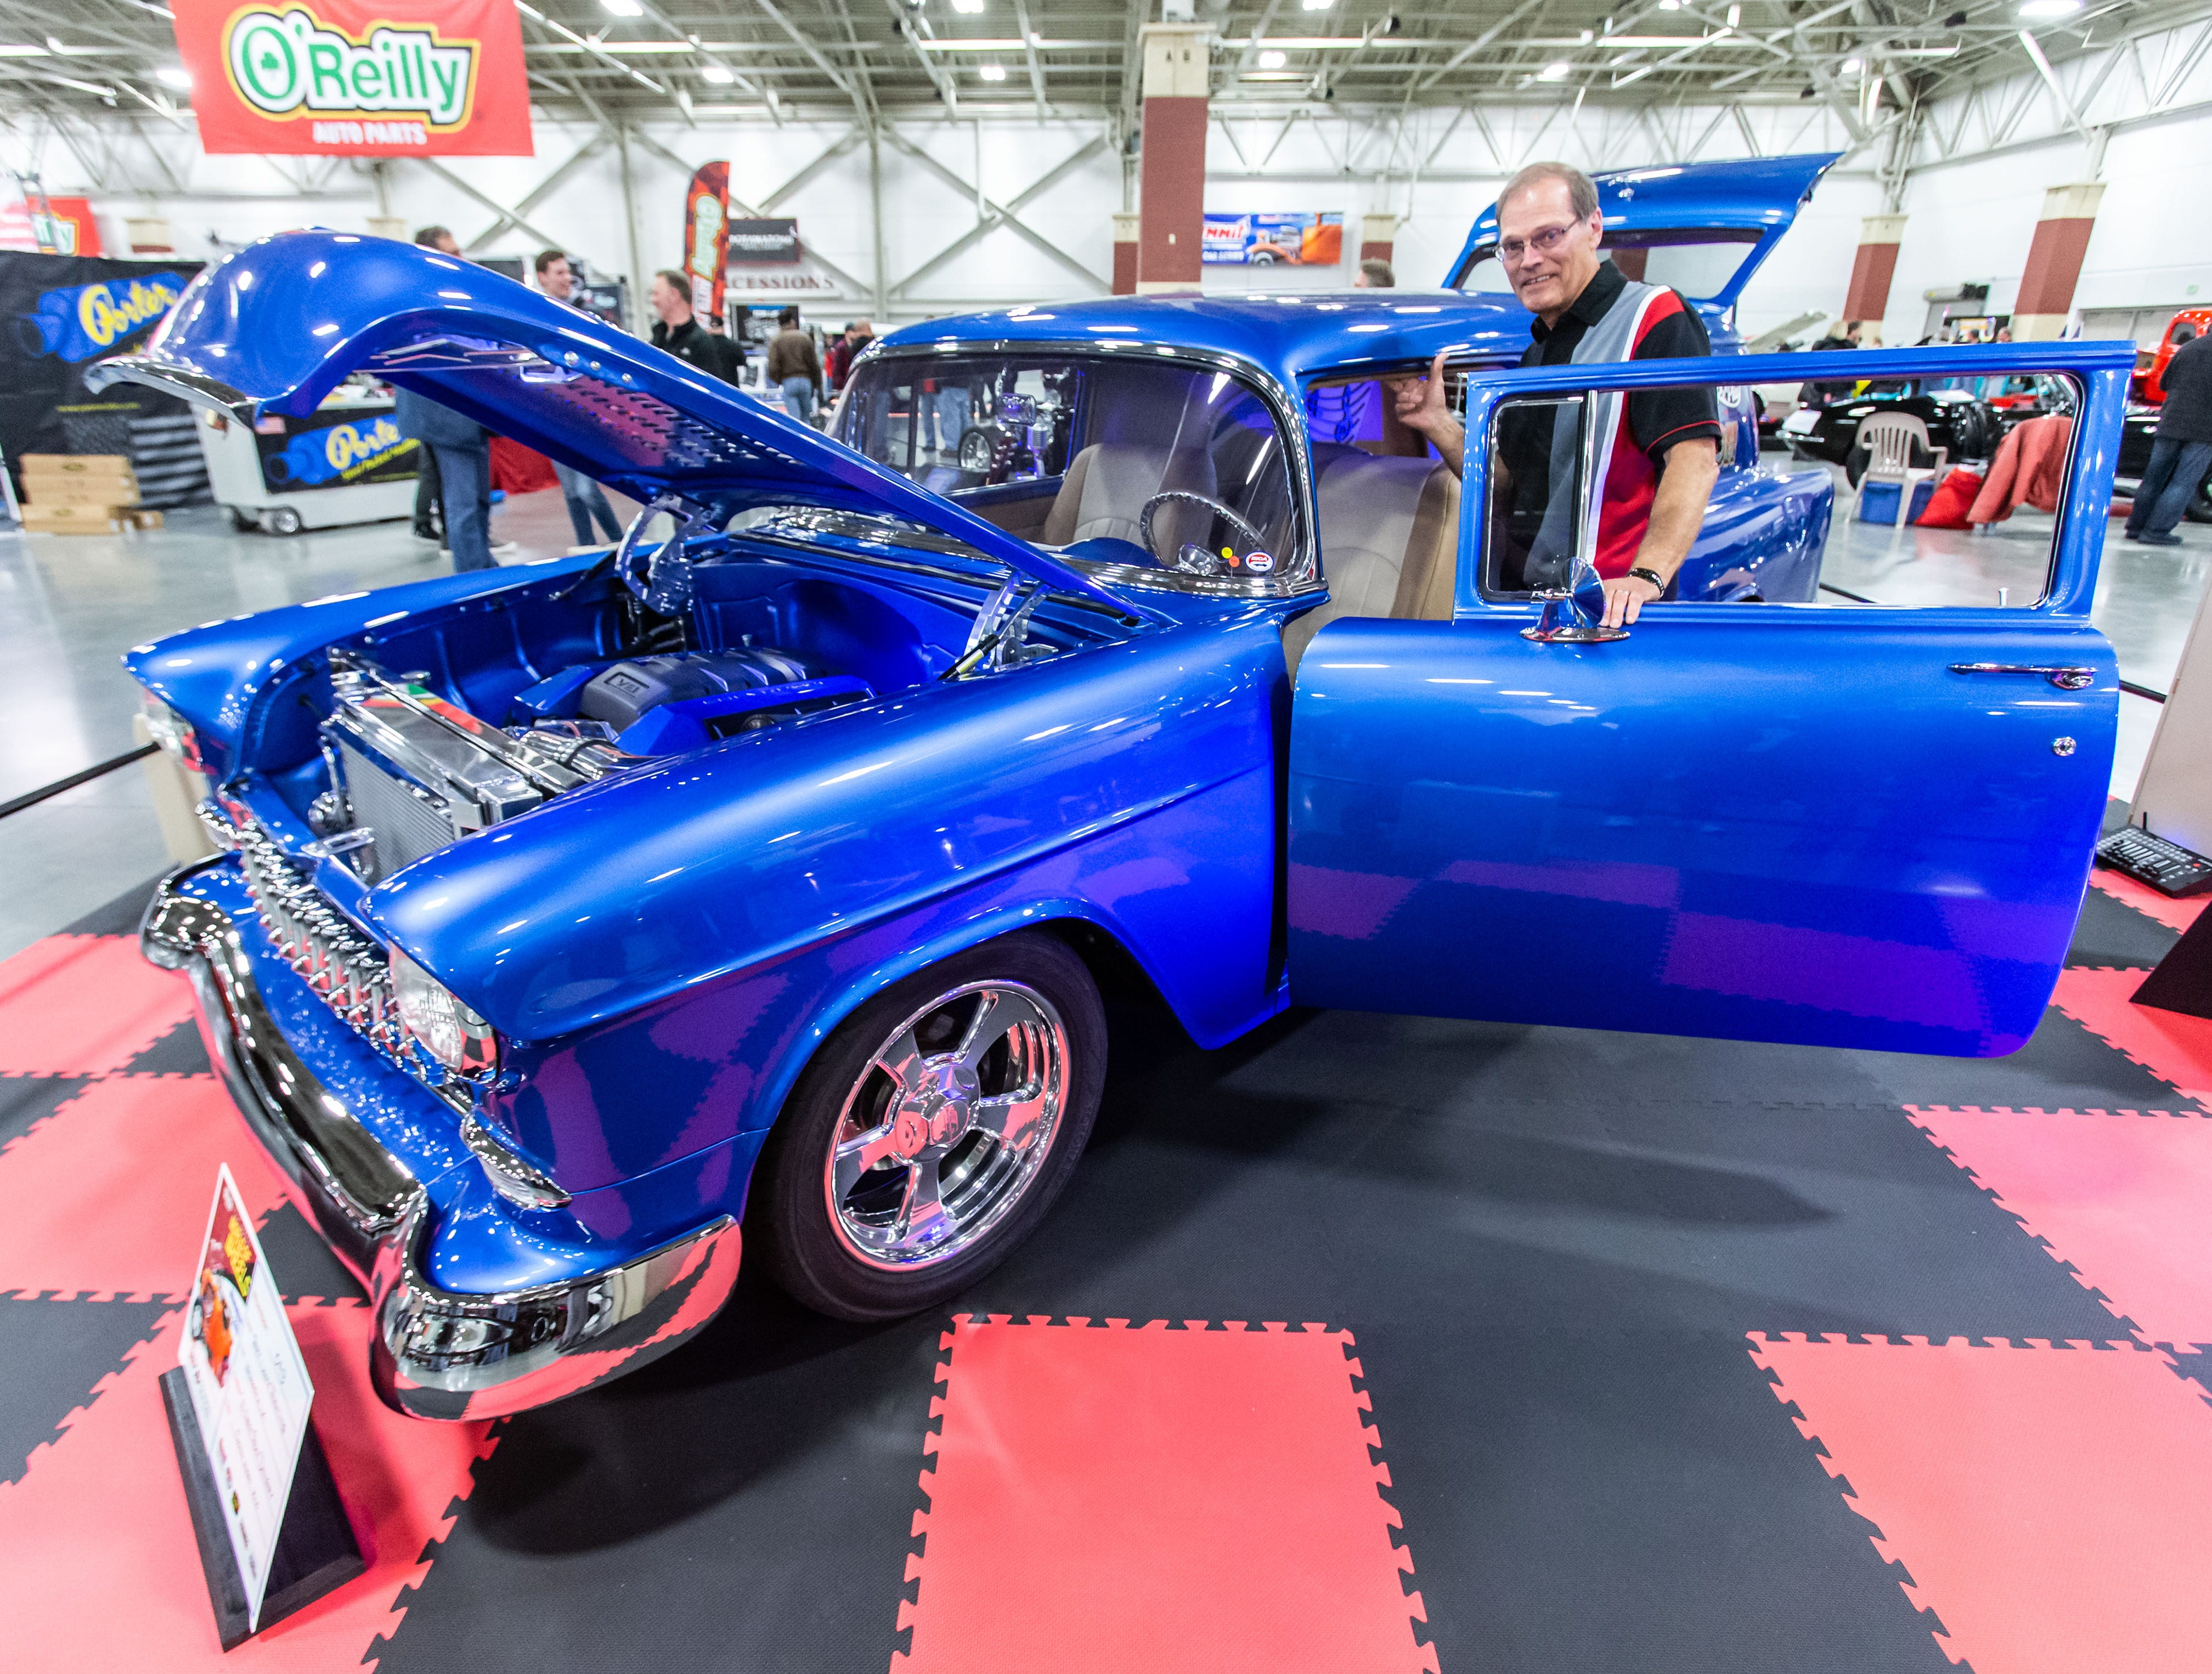 Terry Thuemling of Waukesha displays his 1955 Chevy Delivery Sedan during the 57th annual O'Reilly Auto Parts World of Wheels at State Fair Park in West Allis on Saturday, Feb. 23, 2019. The event features over 300 vehicles, celebrity appearances, vendors, a charity auction and more.